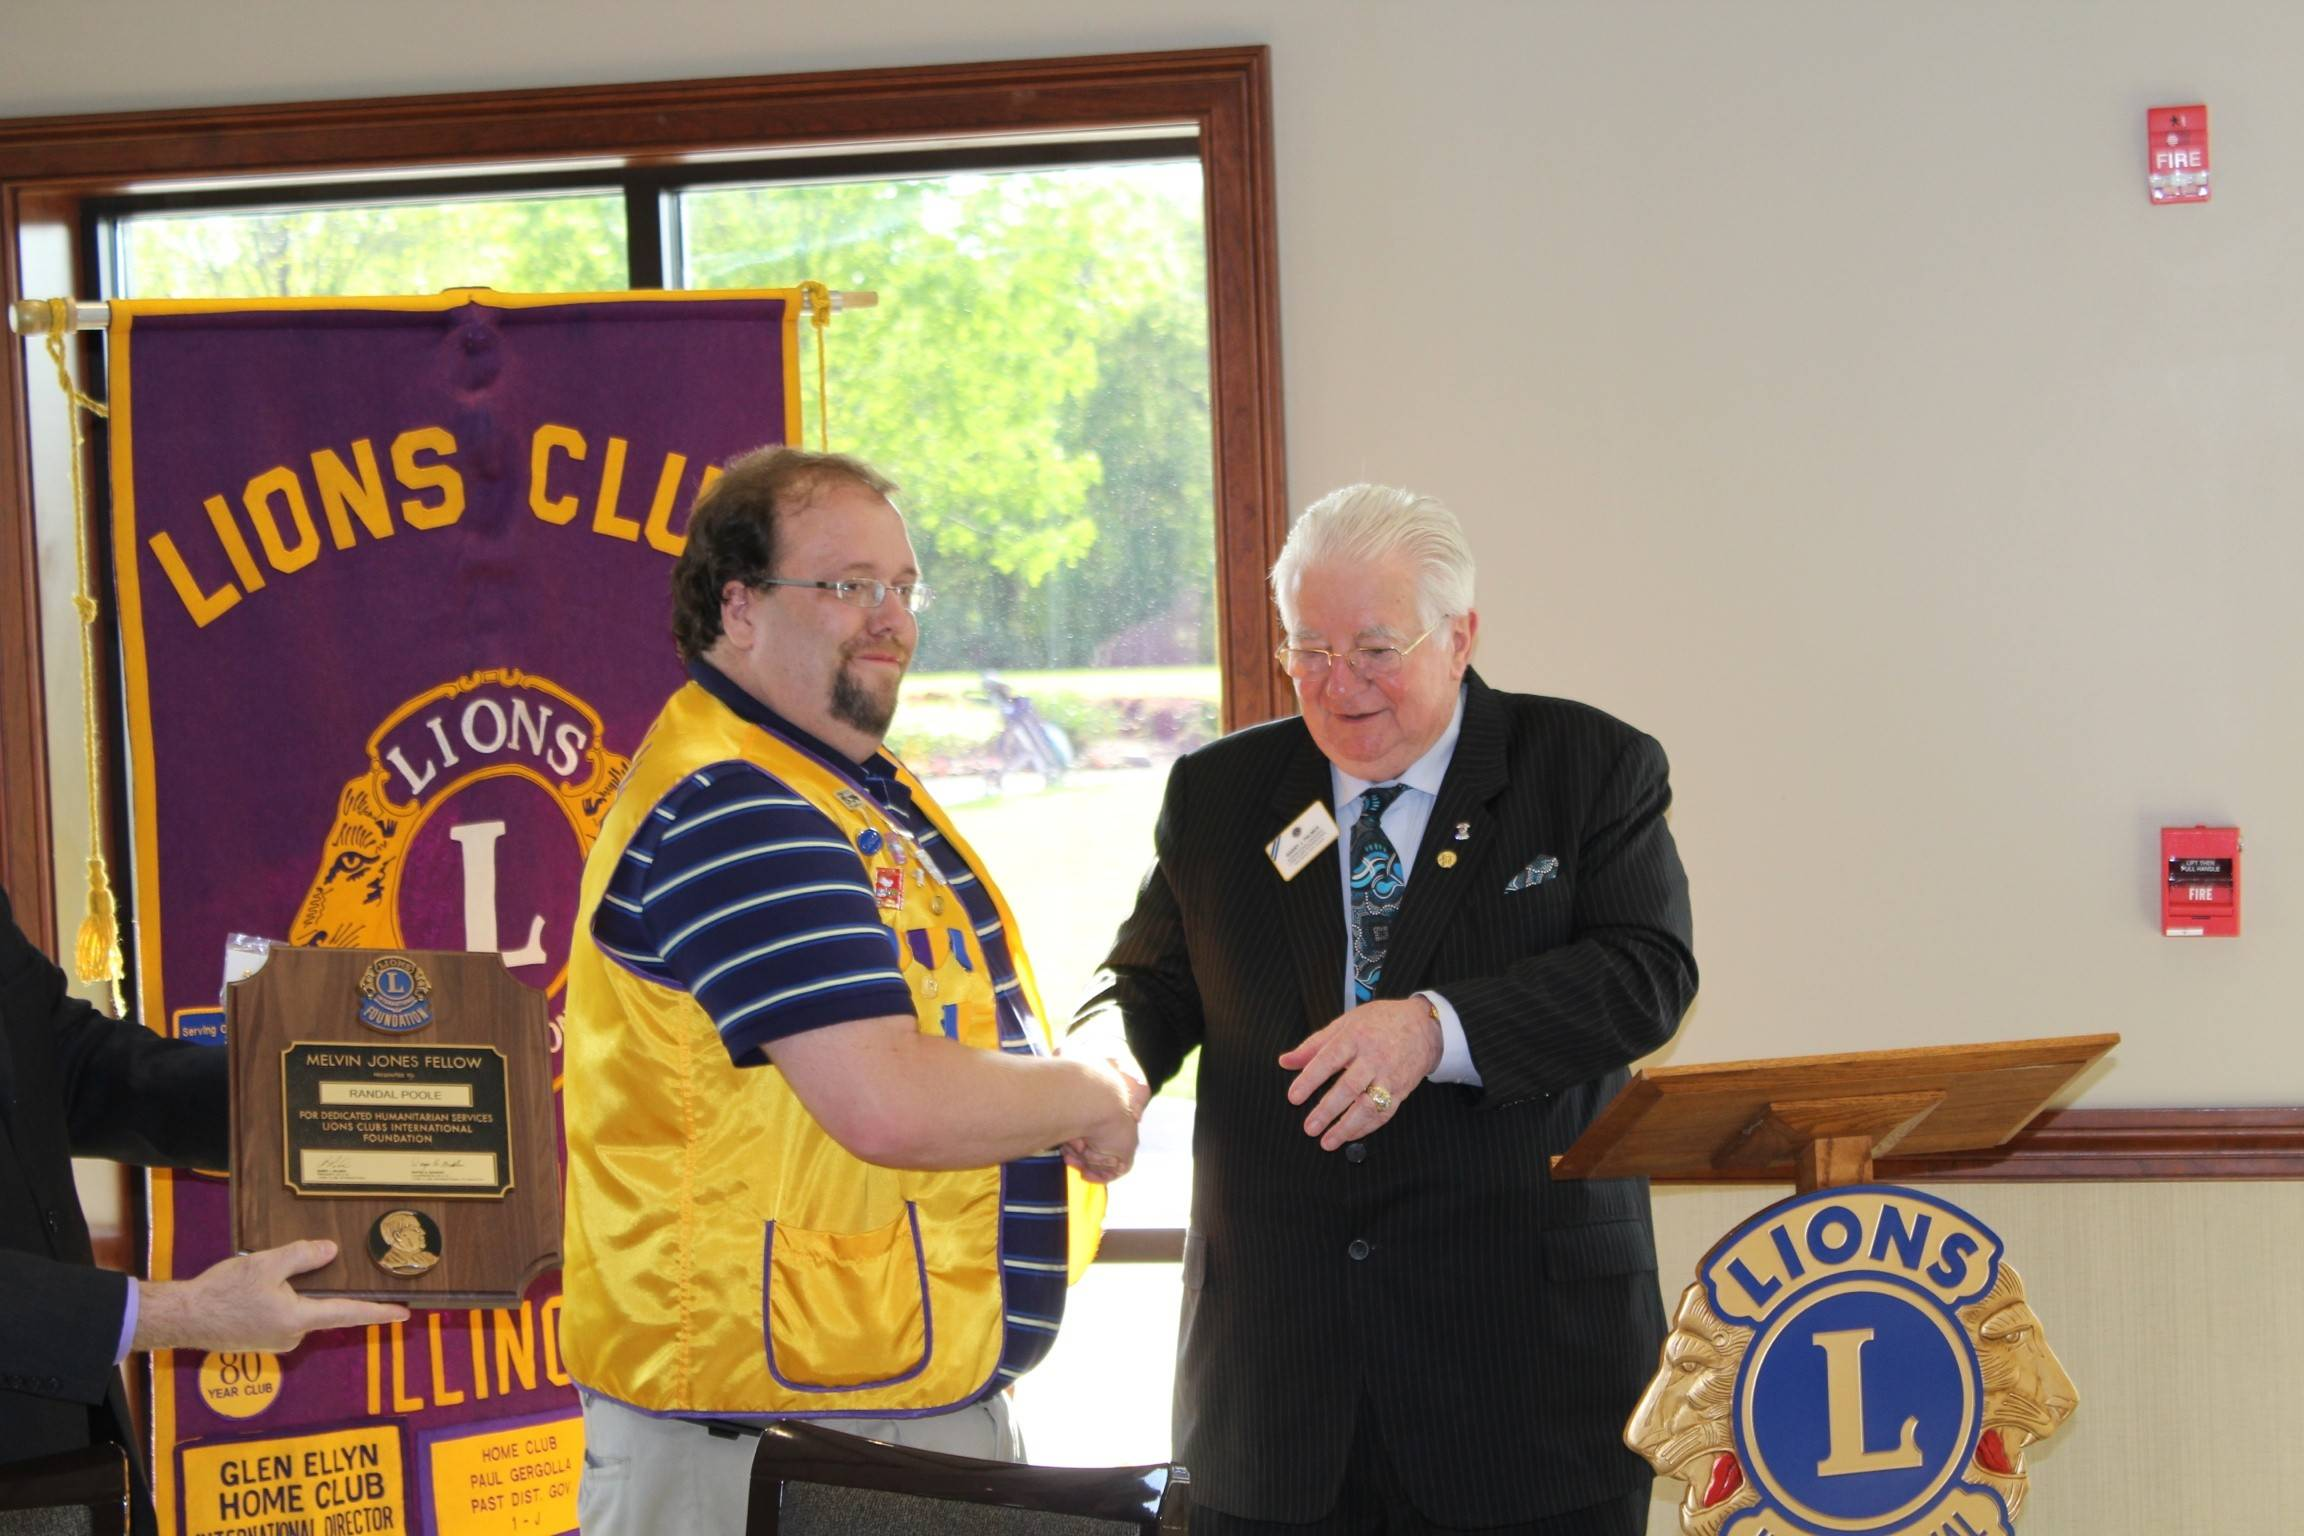 Lions International President Barry J. Palmer, right, presents Glen Ellyn Lion Randy Poole with the Melvin Jones Fellowship Award, the highest form of recognition for an individual who has given exemplary service to his club and community.